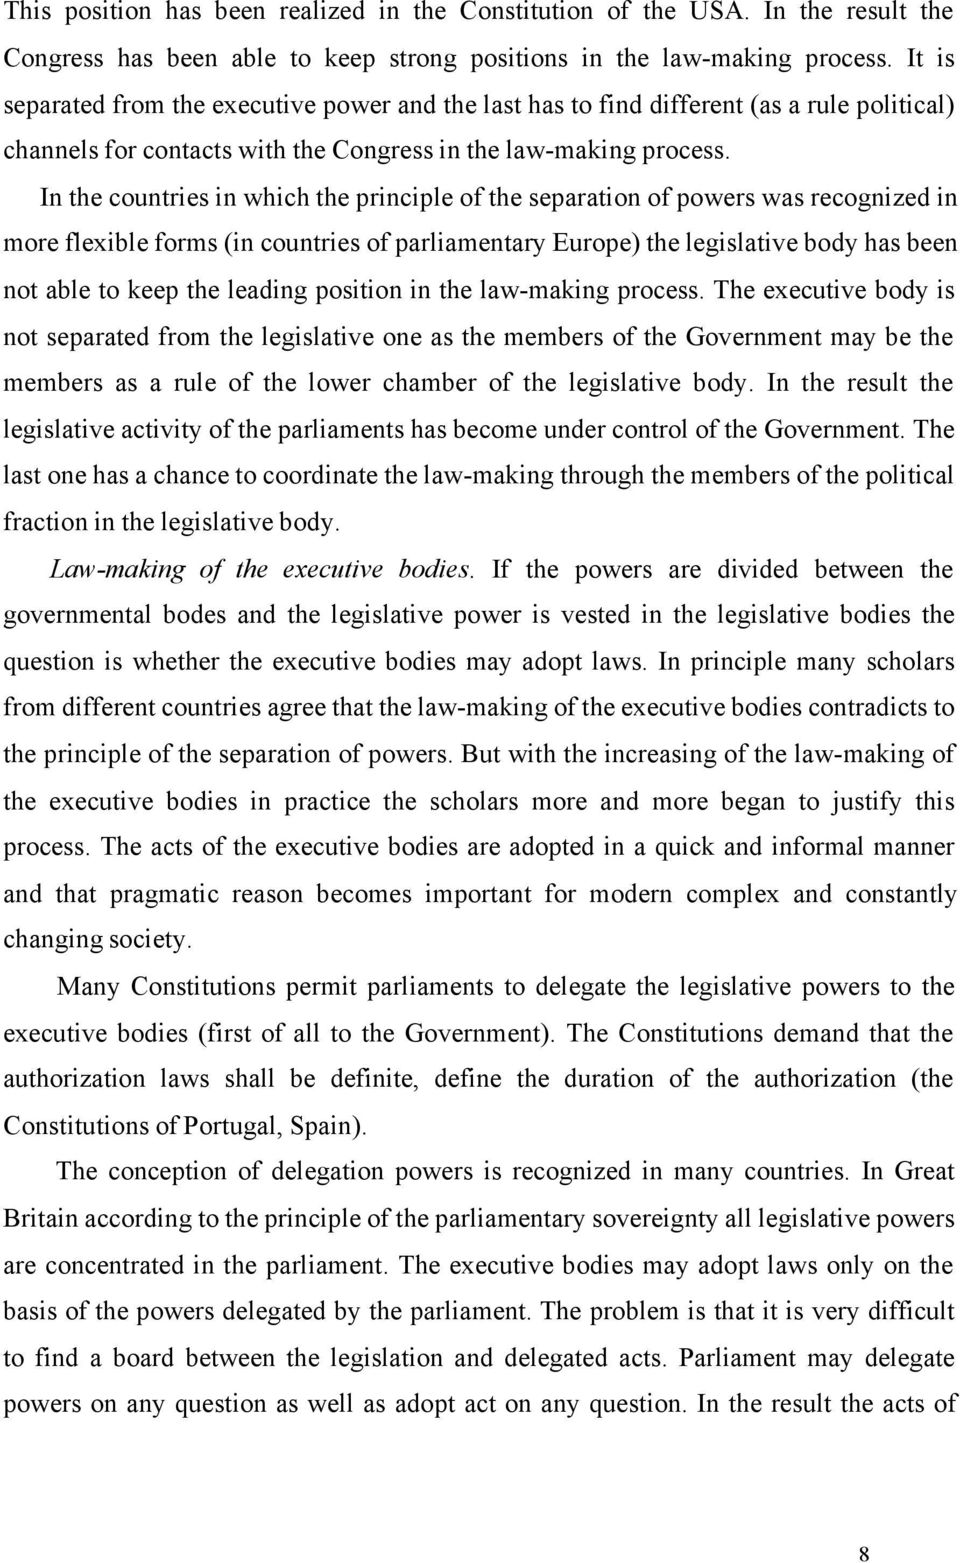 In the countries in which the principle of the separation of powers was recognized in more flexible forms (in countries of parliamentary Europe) the legislative body has been not able to keep the